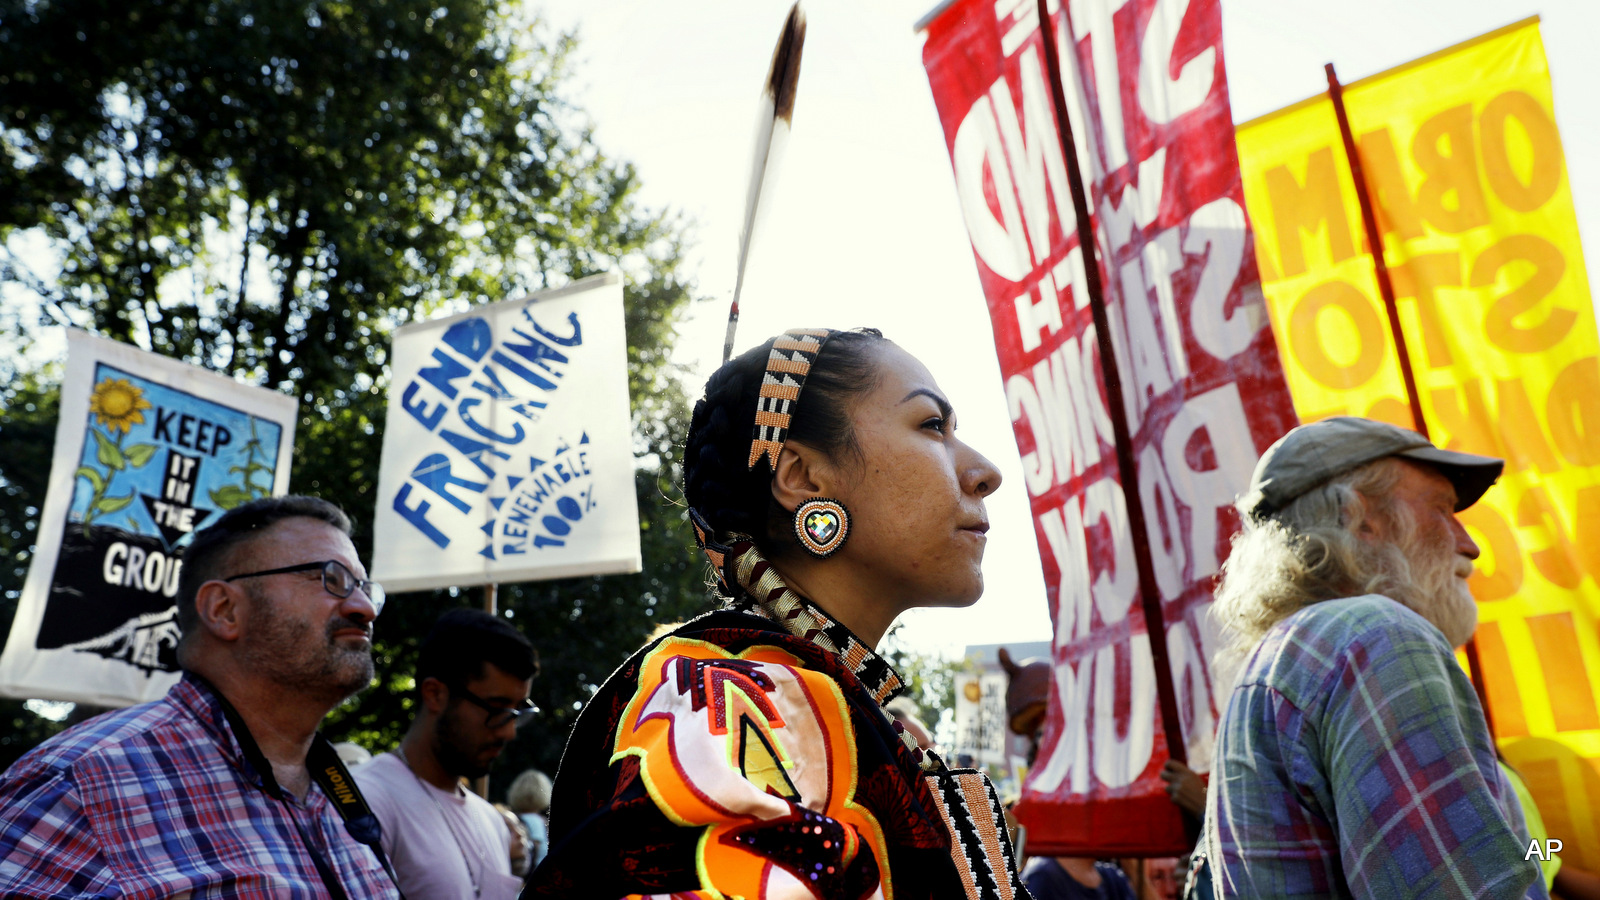 Angela Miracle Gladue, center, a member of the Frog Lake First Nations, a Cree community in Edmonton, Alberta, Canada, attends a rally in support of the Standing Rock Sioux Tribe and in opposition of the Dakota Access oil pipeline, in Lafayette Park near the White House, Tuesday, Sept. 13, 2016, in Washington.